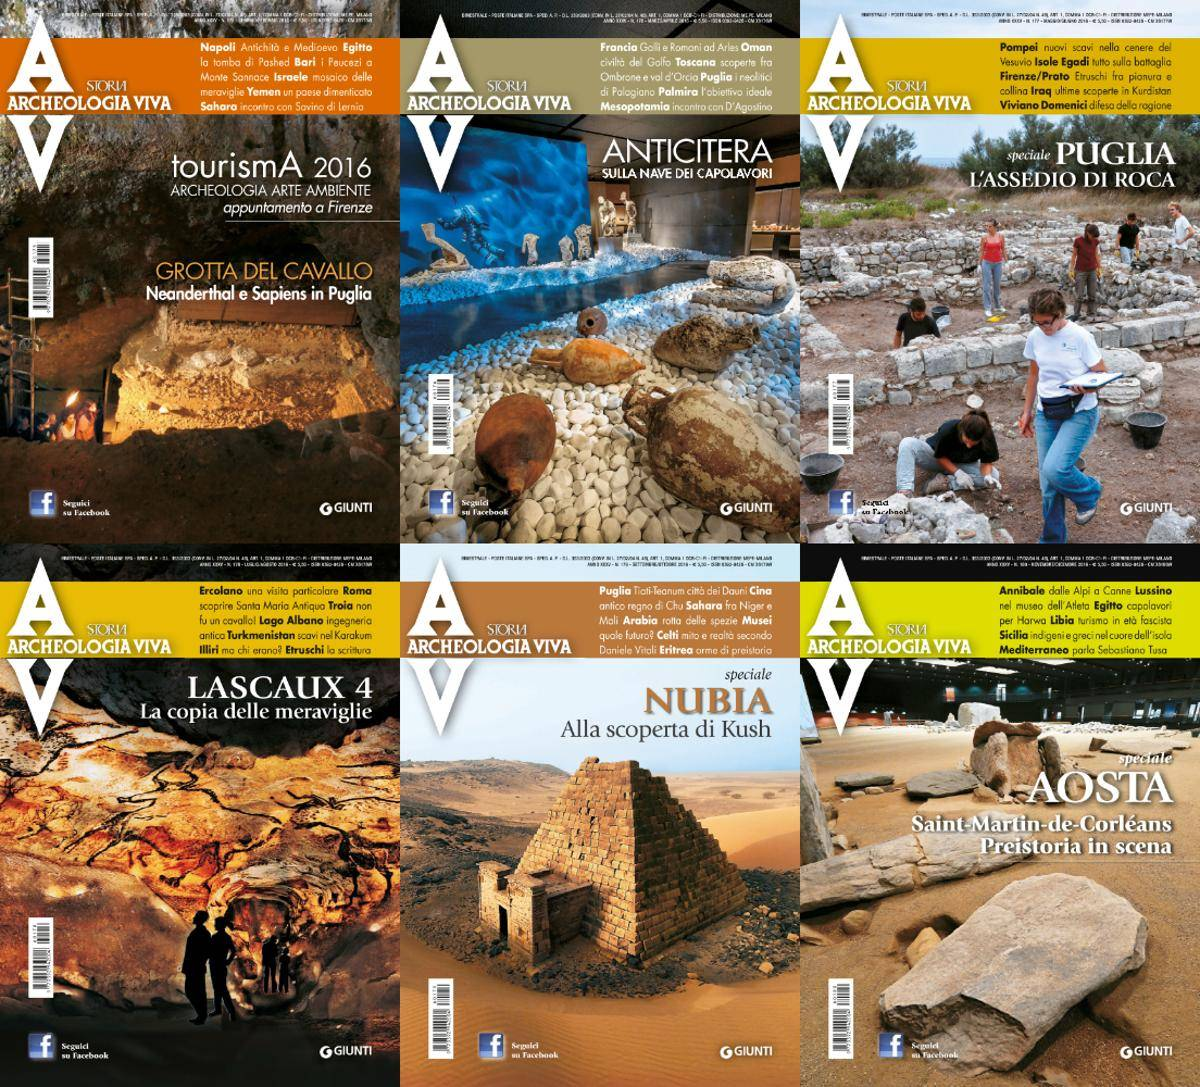 Archeologia Viva - 2016 Full Year Issues Collection